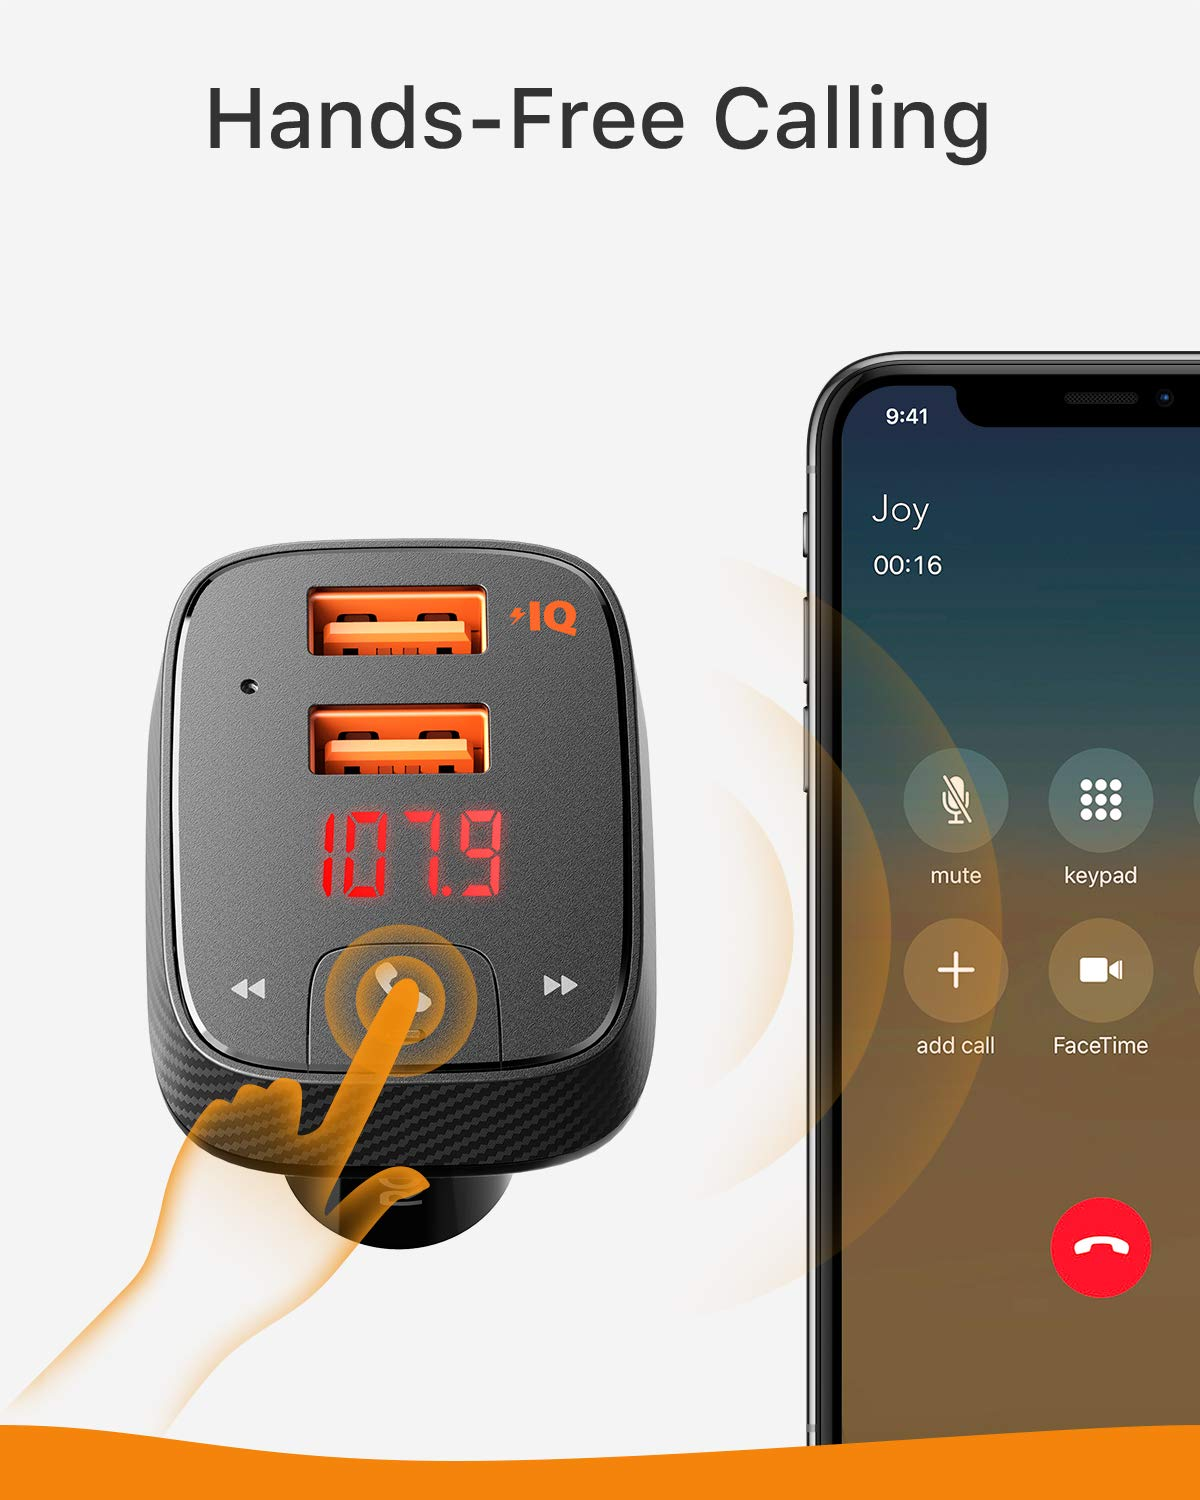 Roav SmartCharge F2, by Anker, FM Transmitter, Bluetooth Receiver, Car Charger with Bluetooth 4.2, Car Locator, App Support, 2 USB Ports, PowerIQ, AUX Output, and USB Drive to Play MP3 Files by ROAV (Image #5)